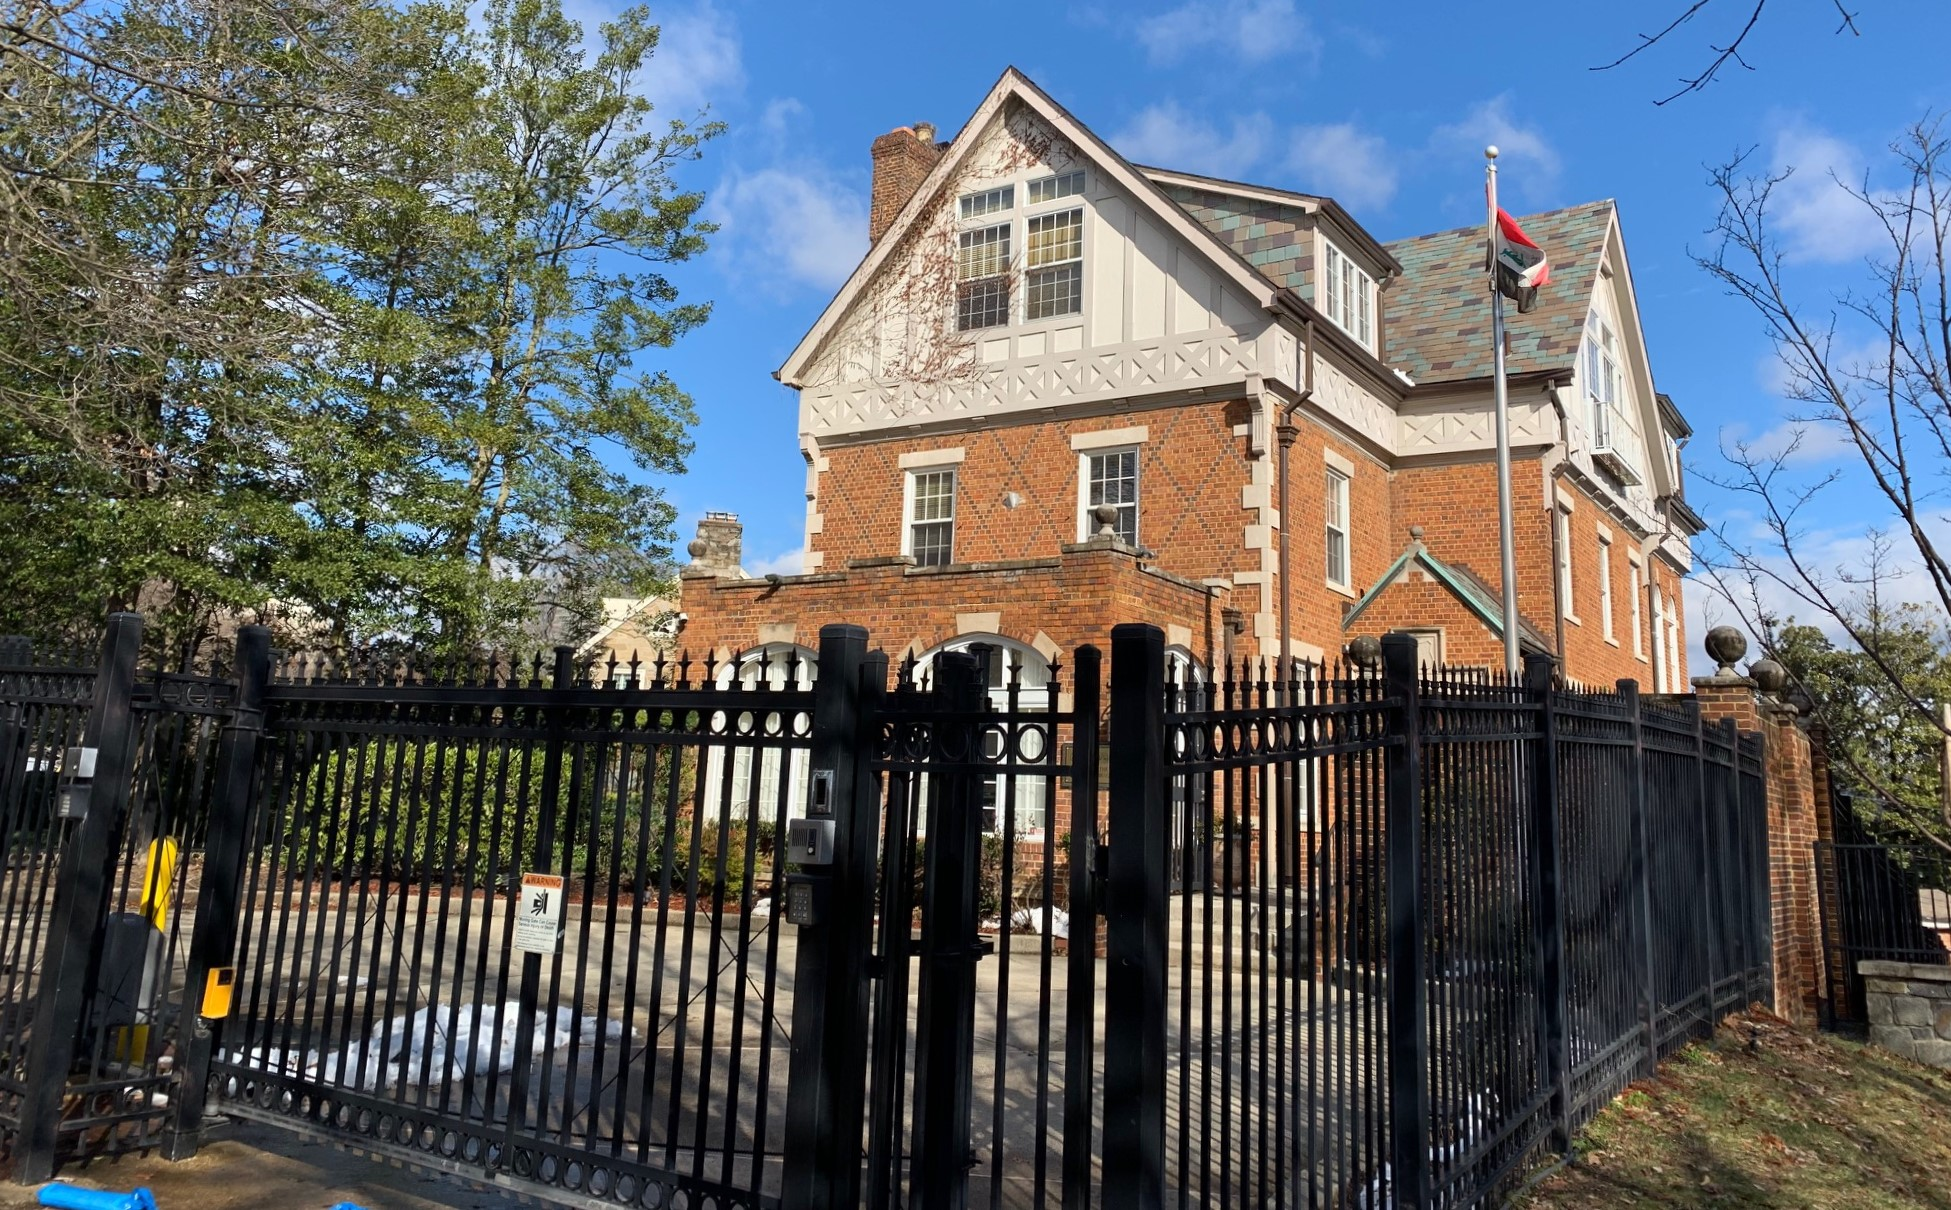 Real Estate and Homes For Sale Near the Embassy of Iraq in Washington, DC. Artyom Shmatko Realtor